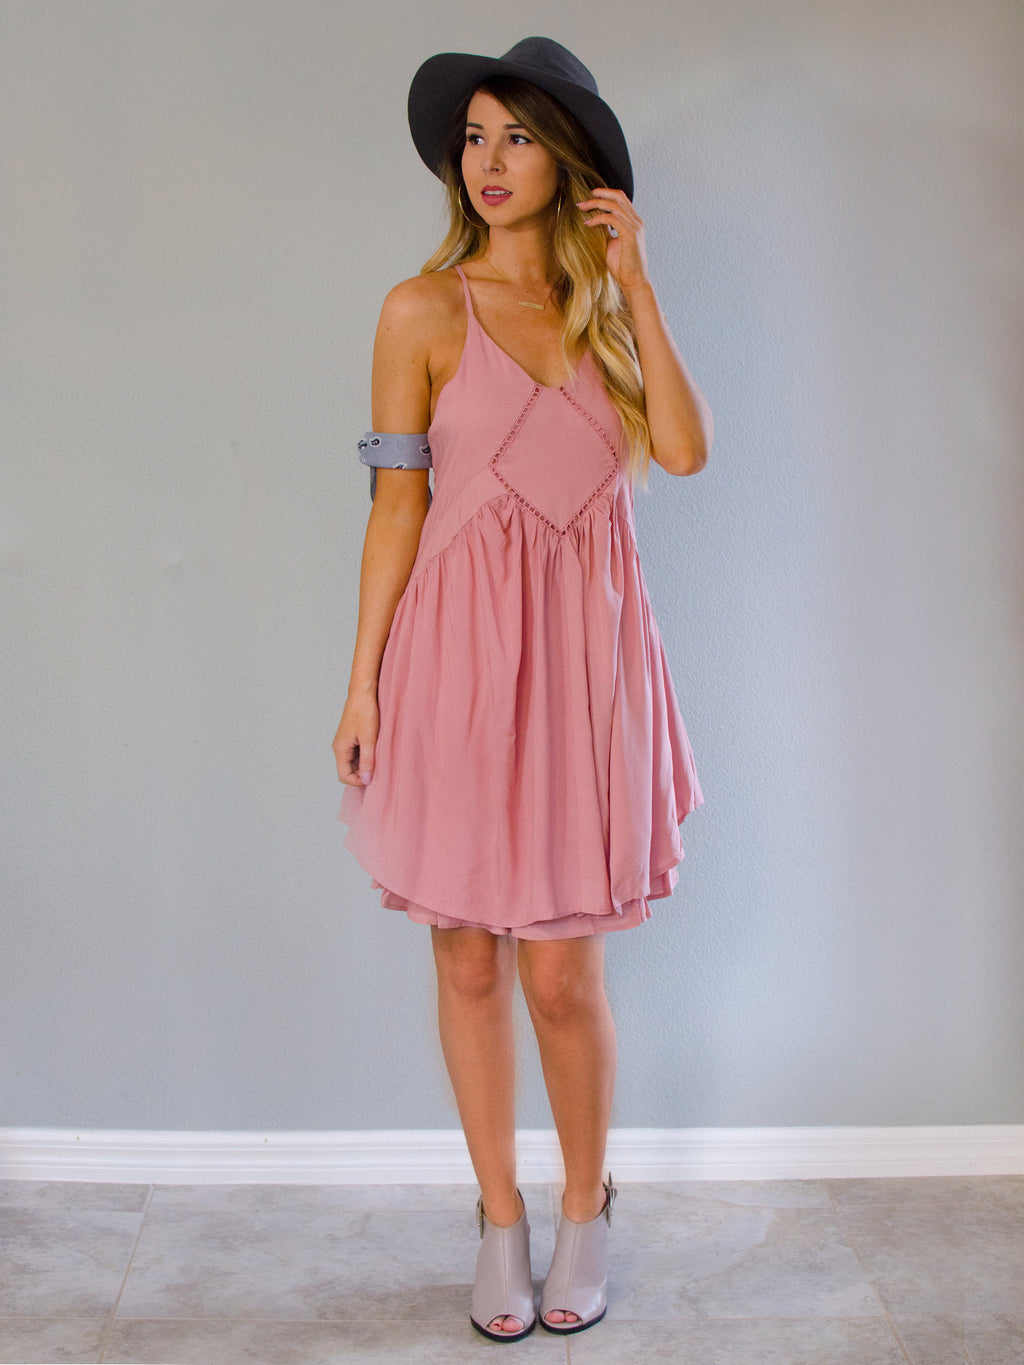 Woodstock Dress Blush - Shellsea